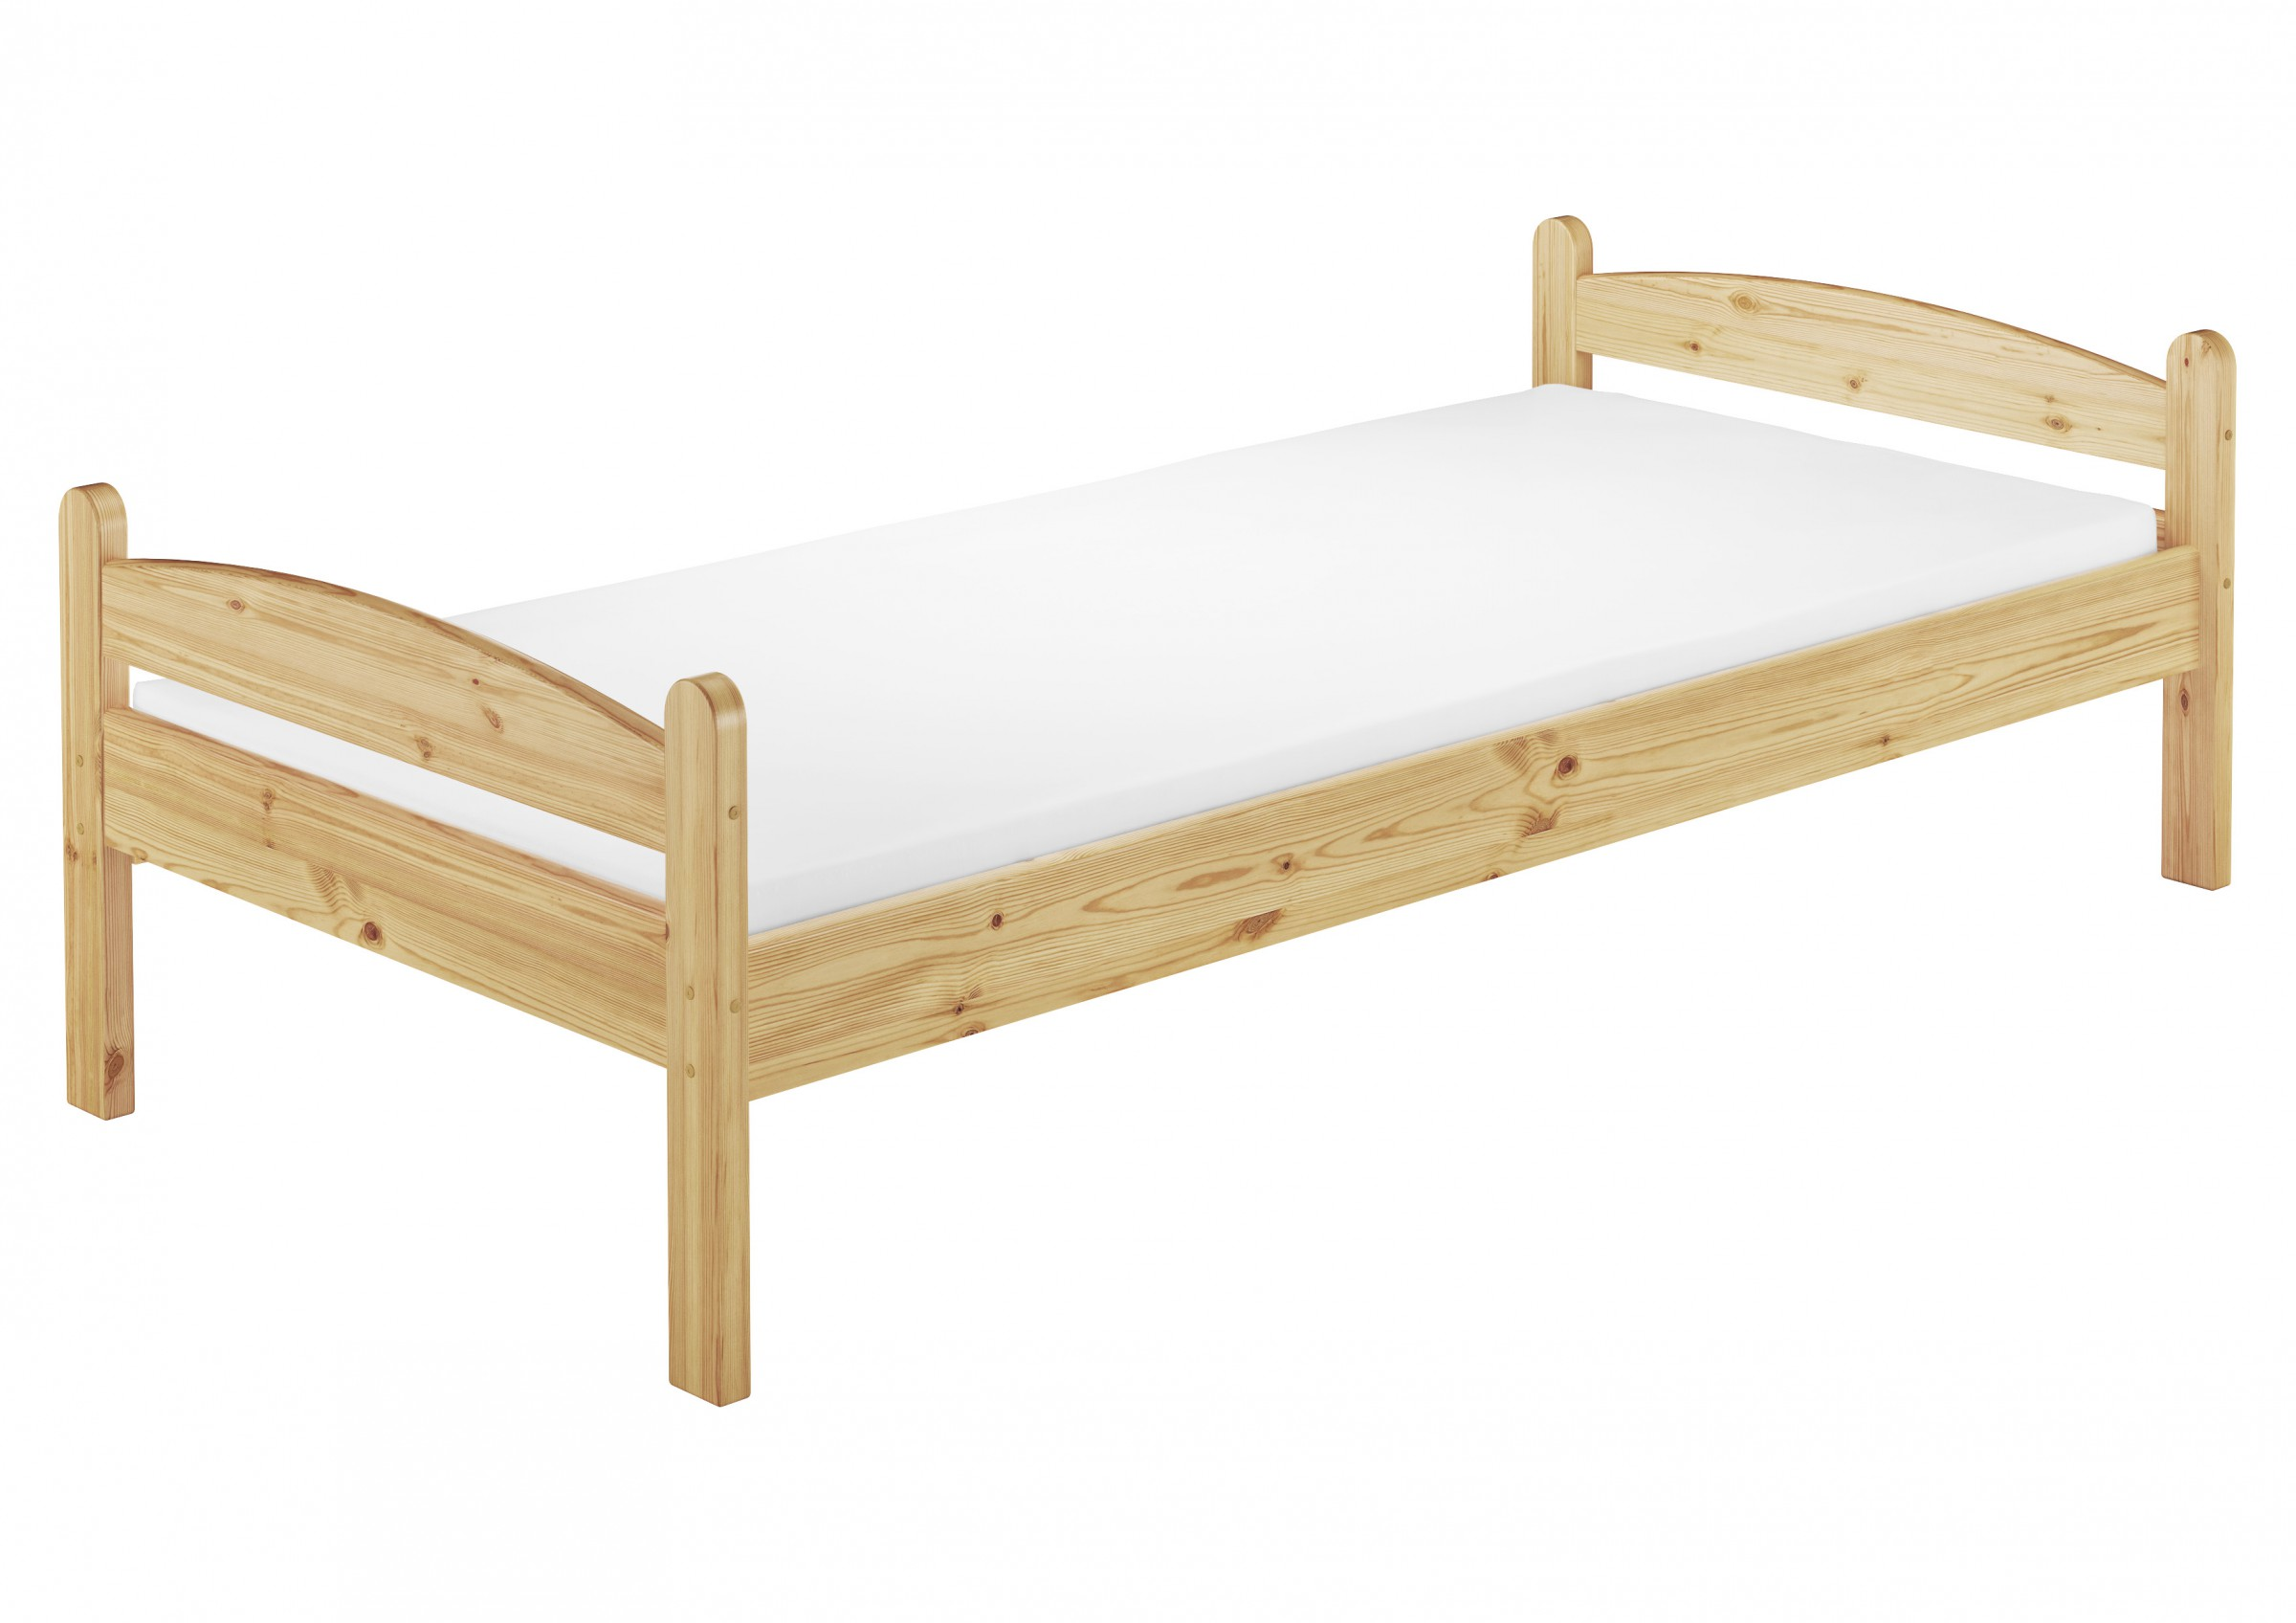 m bett kiefer massiv extra stabil 80x200 cm mit rollrost ebay. Black Bedroom Furniture Sets. Home Design Ideas